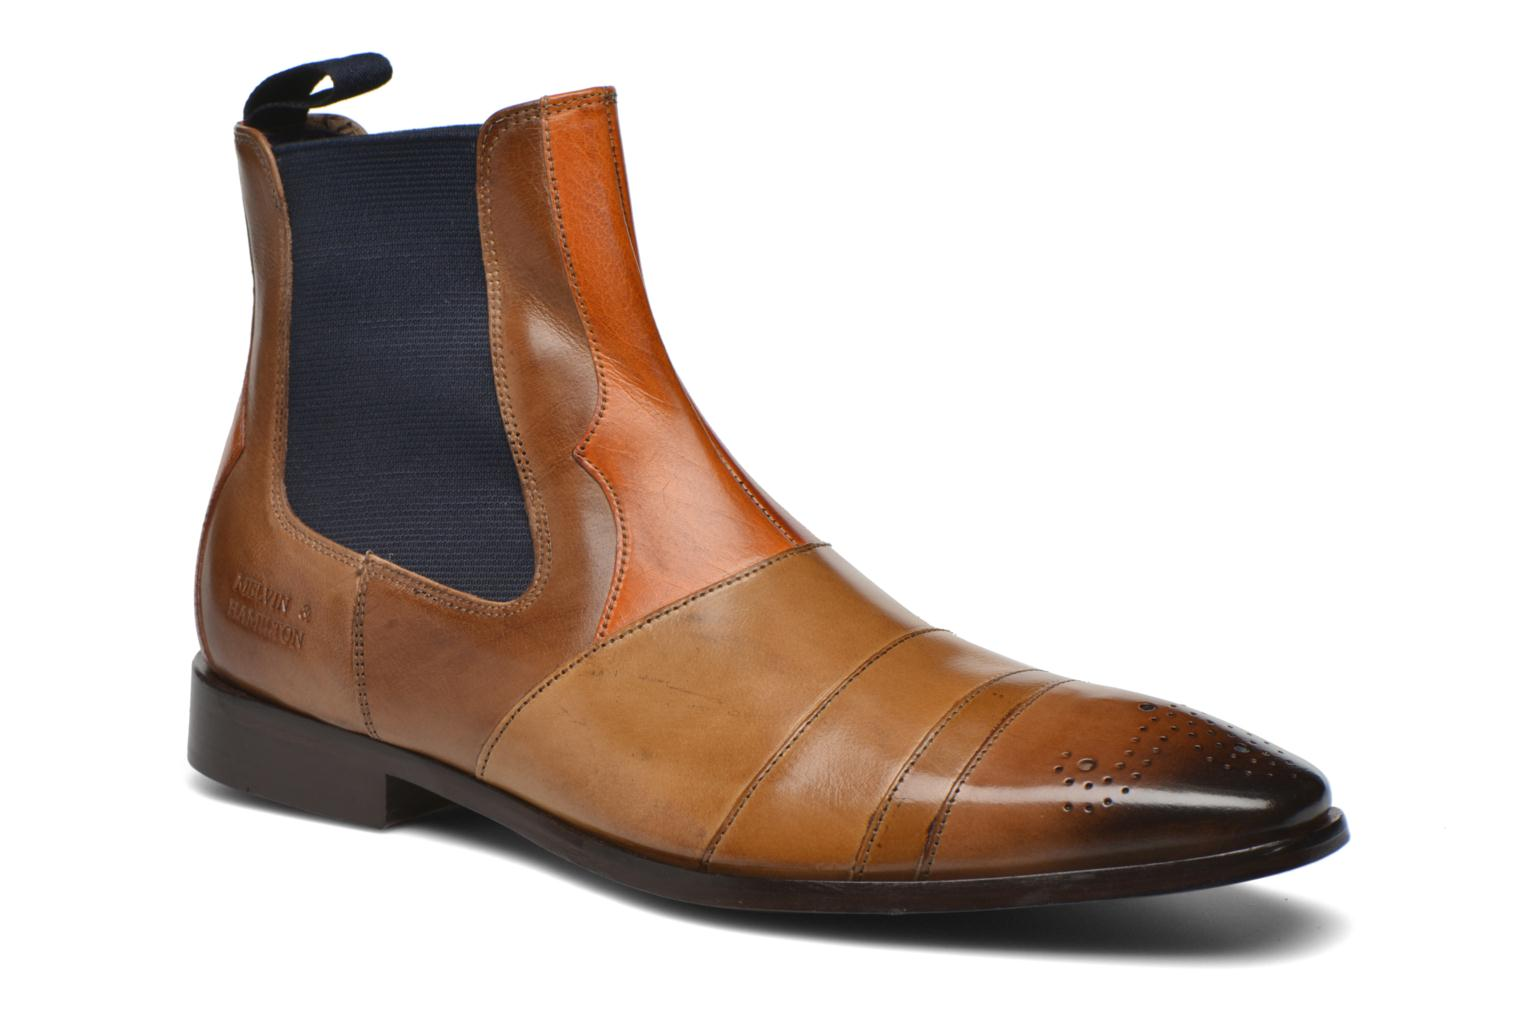 Marques Chaussure homme Melvin & Hamilton homme Elvis 12 Classic mid brown Ash and Orange El navy